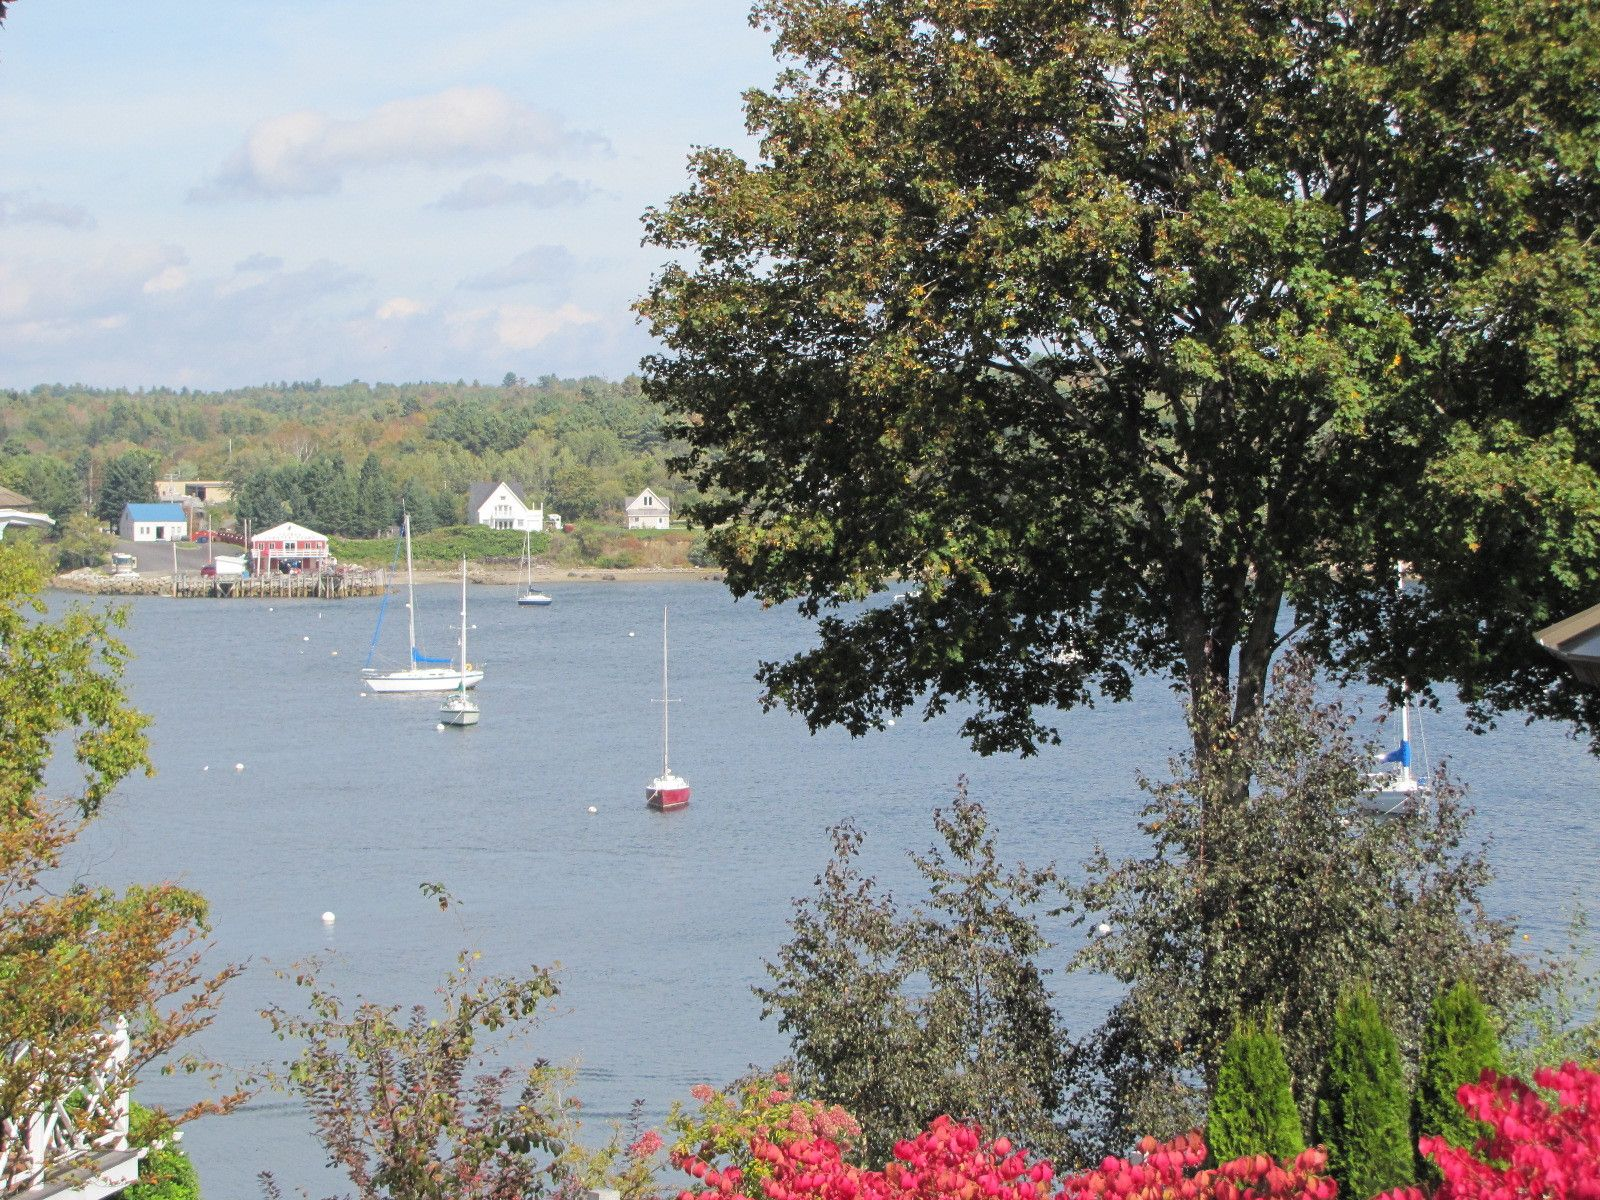 Real Estate Listing - 2 decks with views of Belfast Harbor & Penobscot Bay